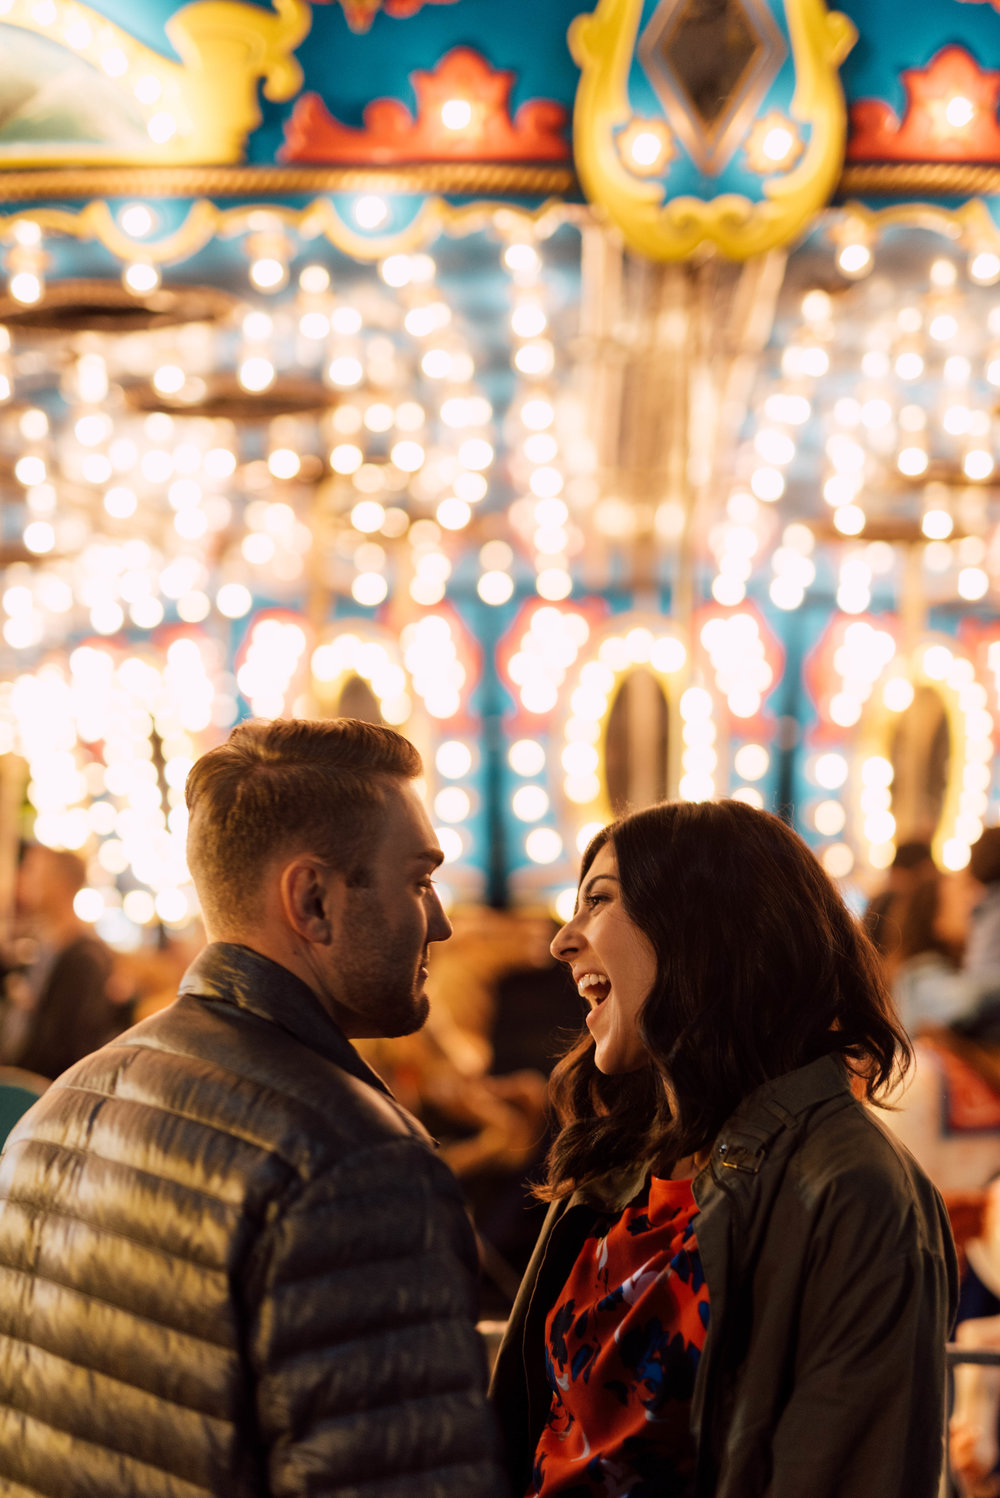 Engagement_Photography_Carnival_Fair-youthebestphotos-13.jpg